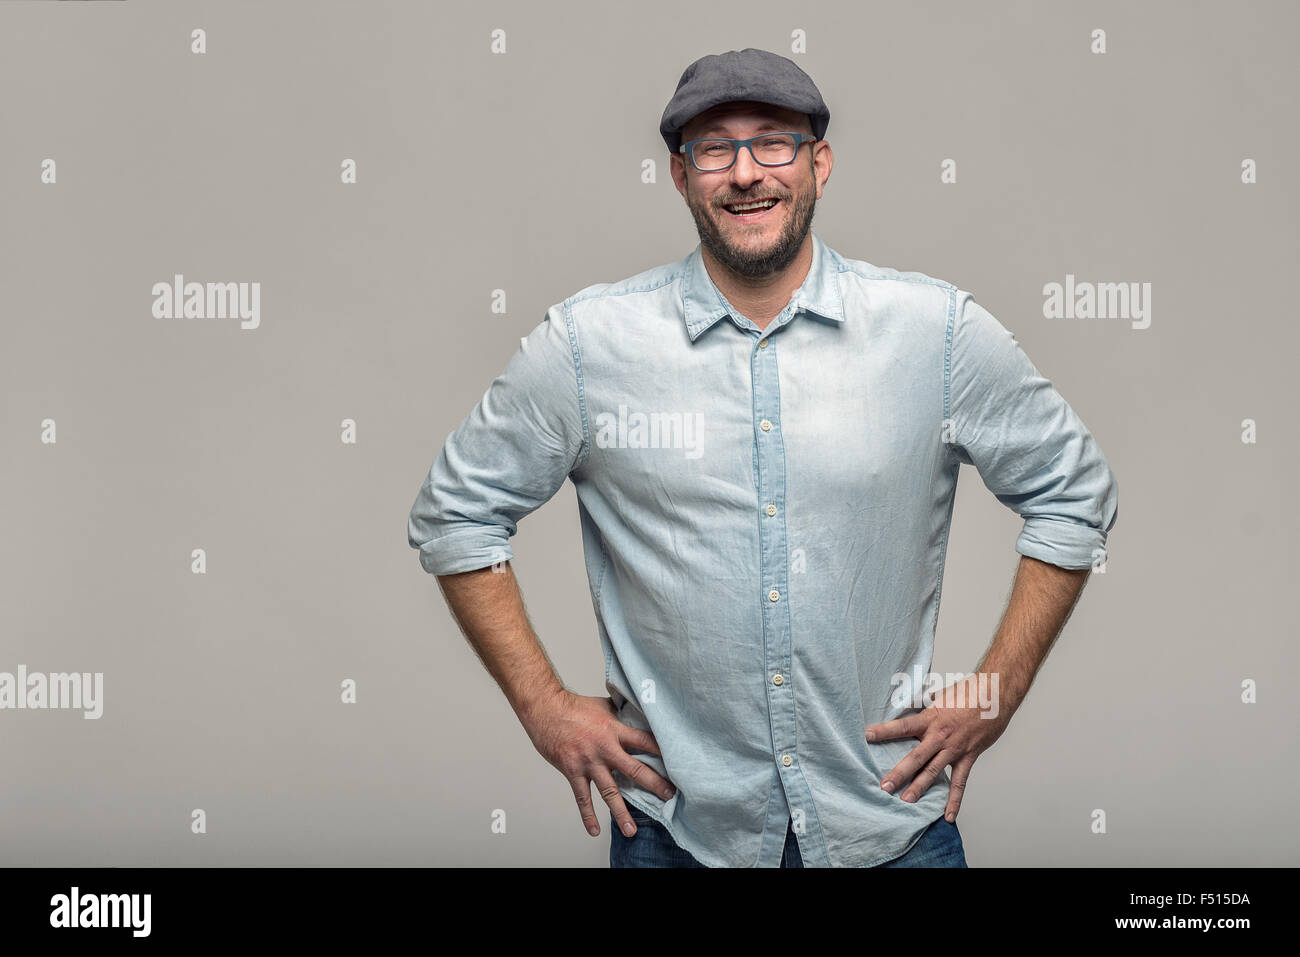 Friendly attractive man with glasses looking at the camera with a lovely warm smile, upper body over grey - Stock Image